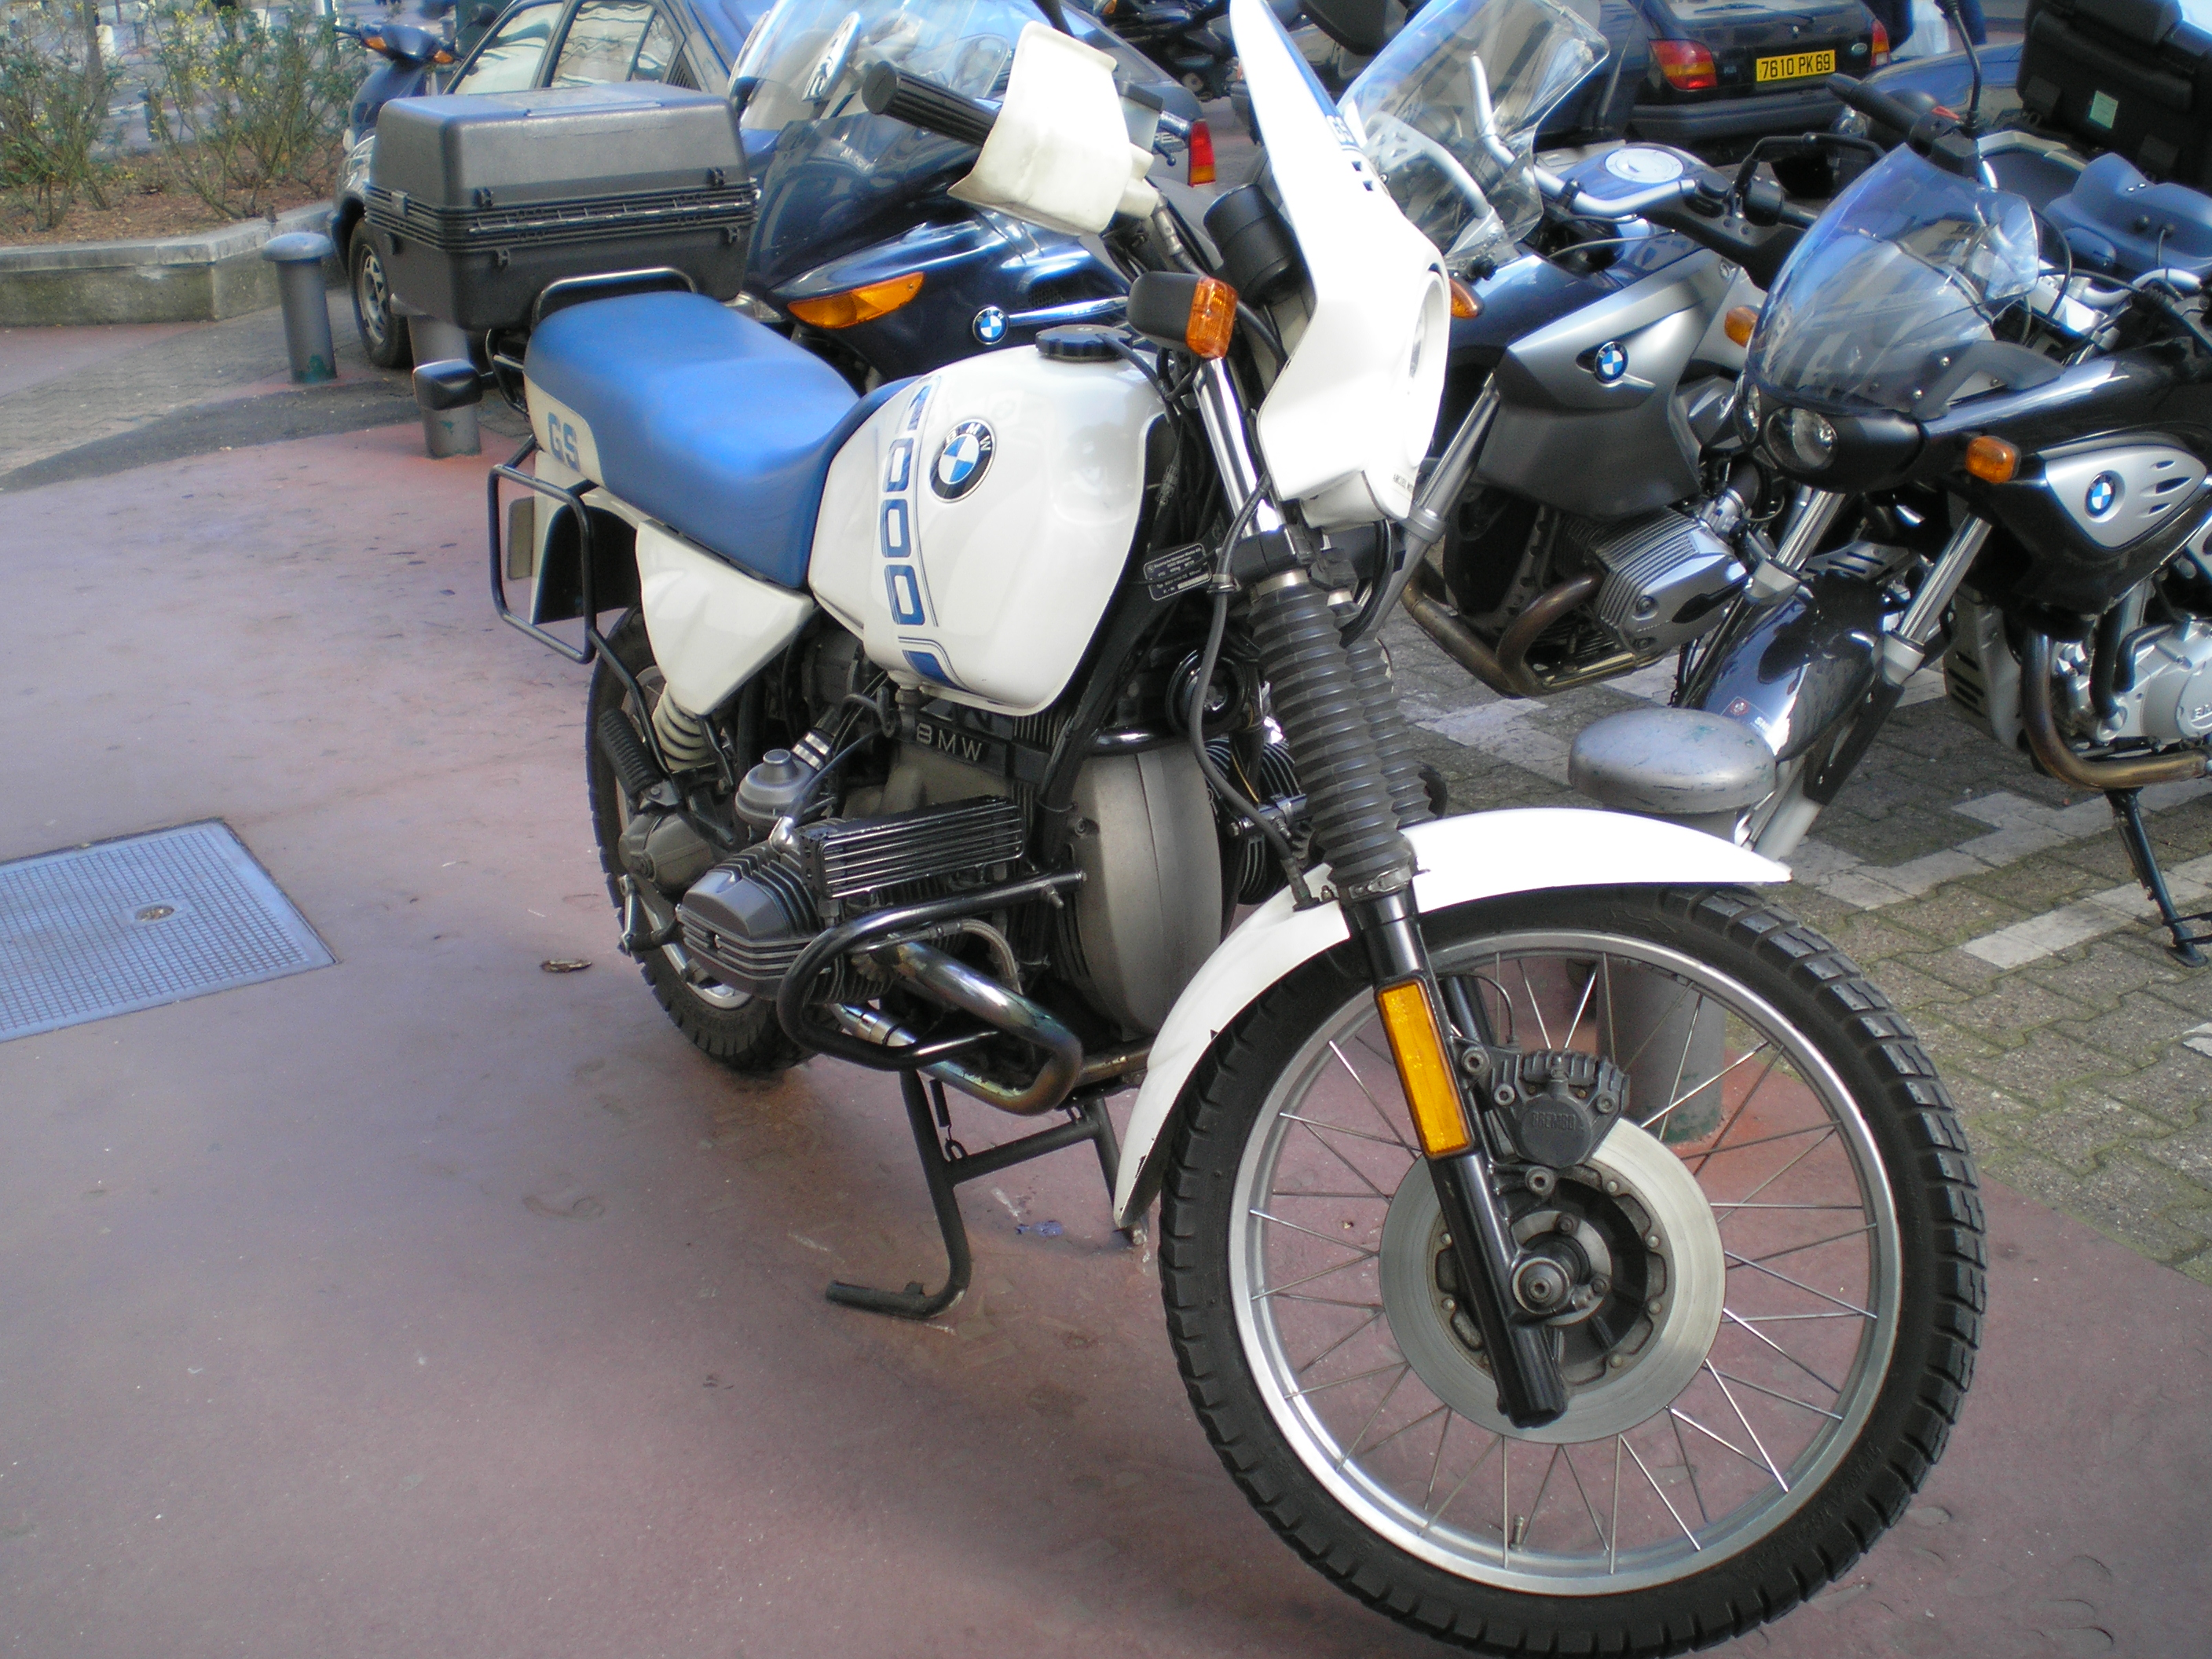 BMW R100GS 1990 images #6821